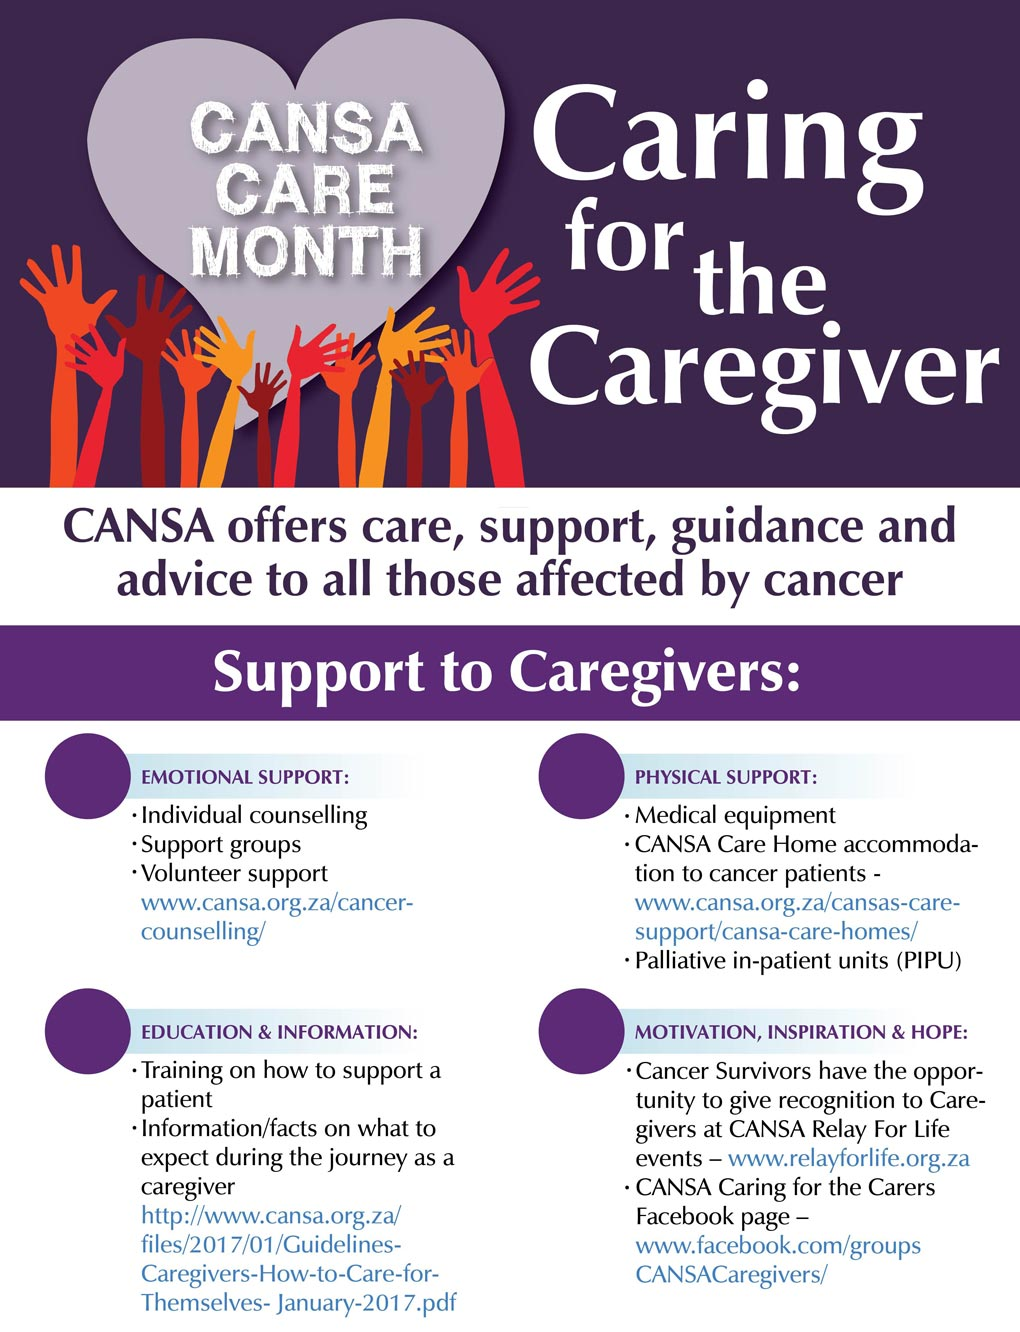 top tips to avoid caregiver burnout